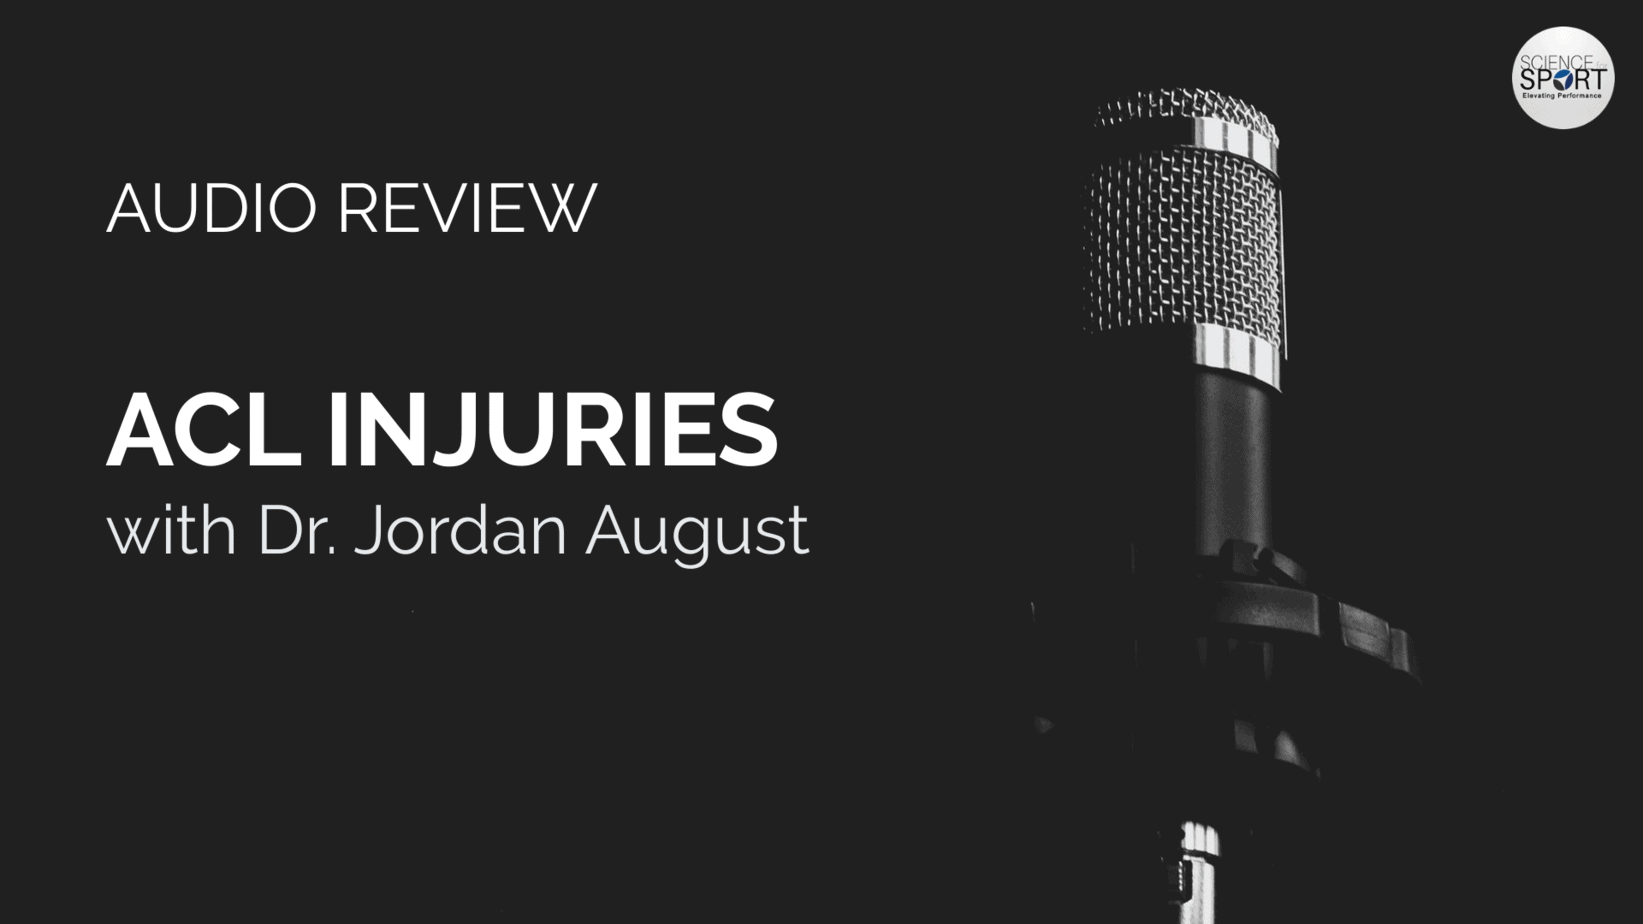 ACL Injuries - Audio Review